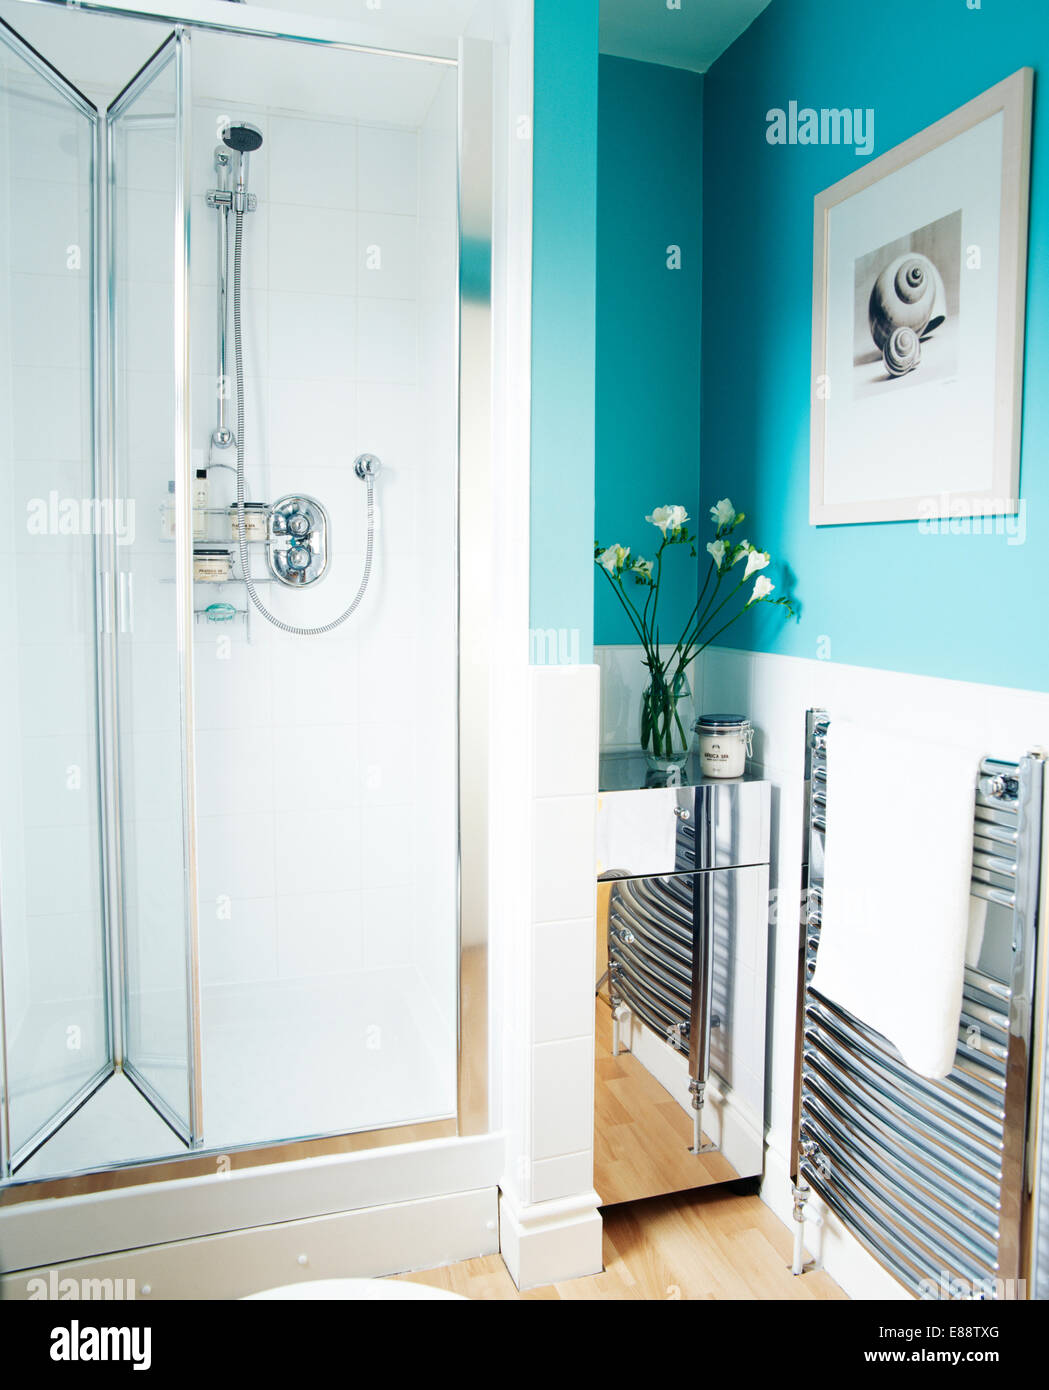 Folding glass door on shower cabinet in modern turquoise bathroom ...